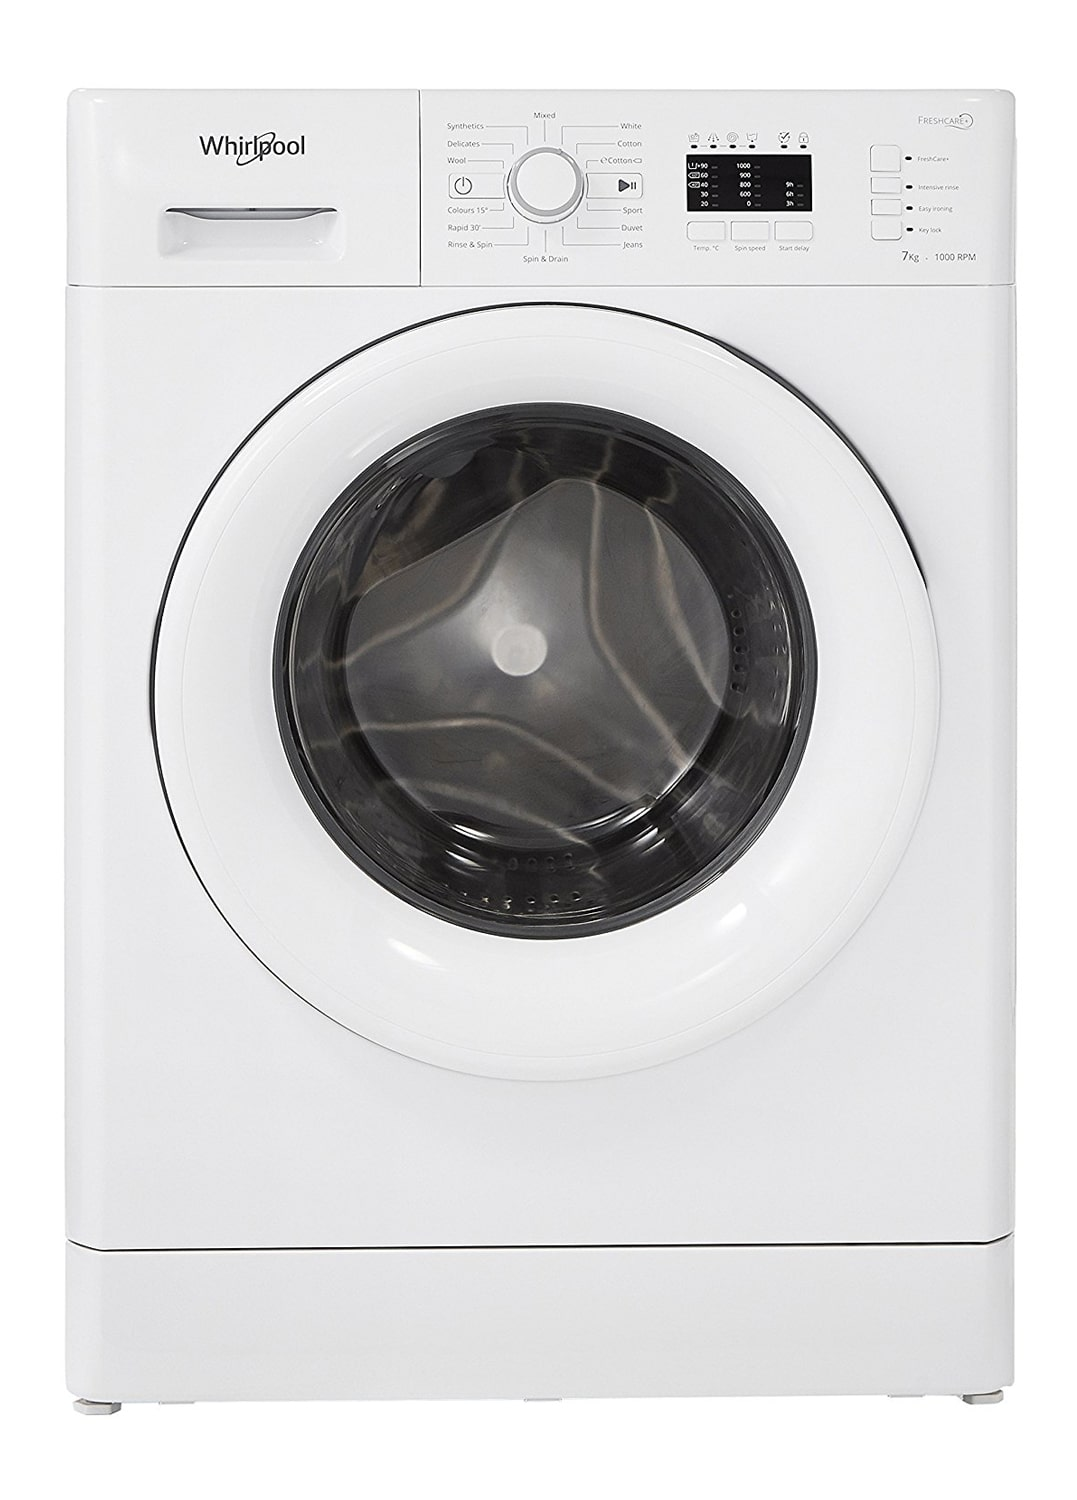 WHIRLPOOL FRESH CARE 7010 7KG Fully Automatic Front Load Washing Machine